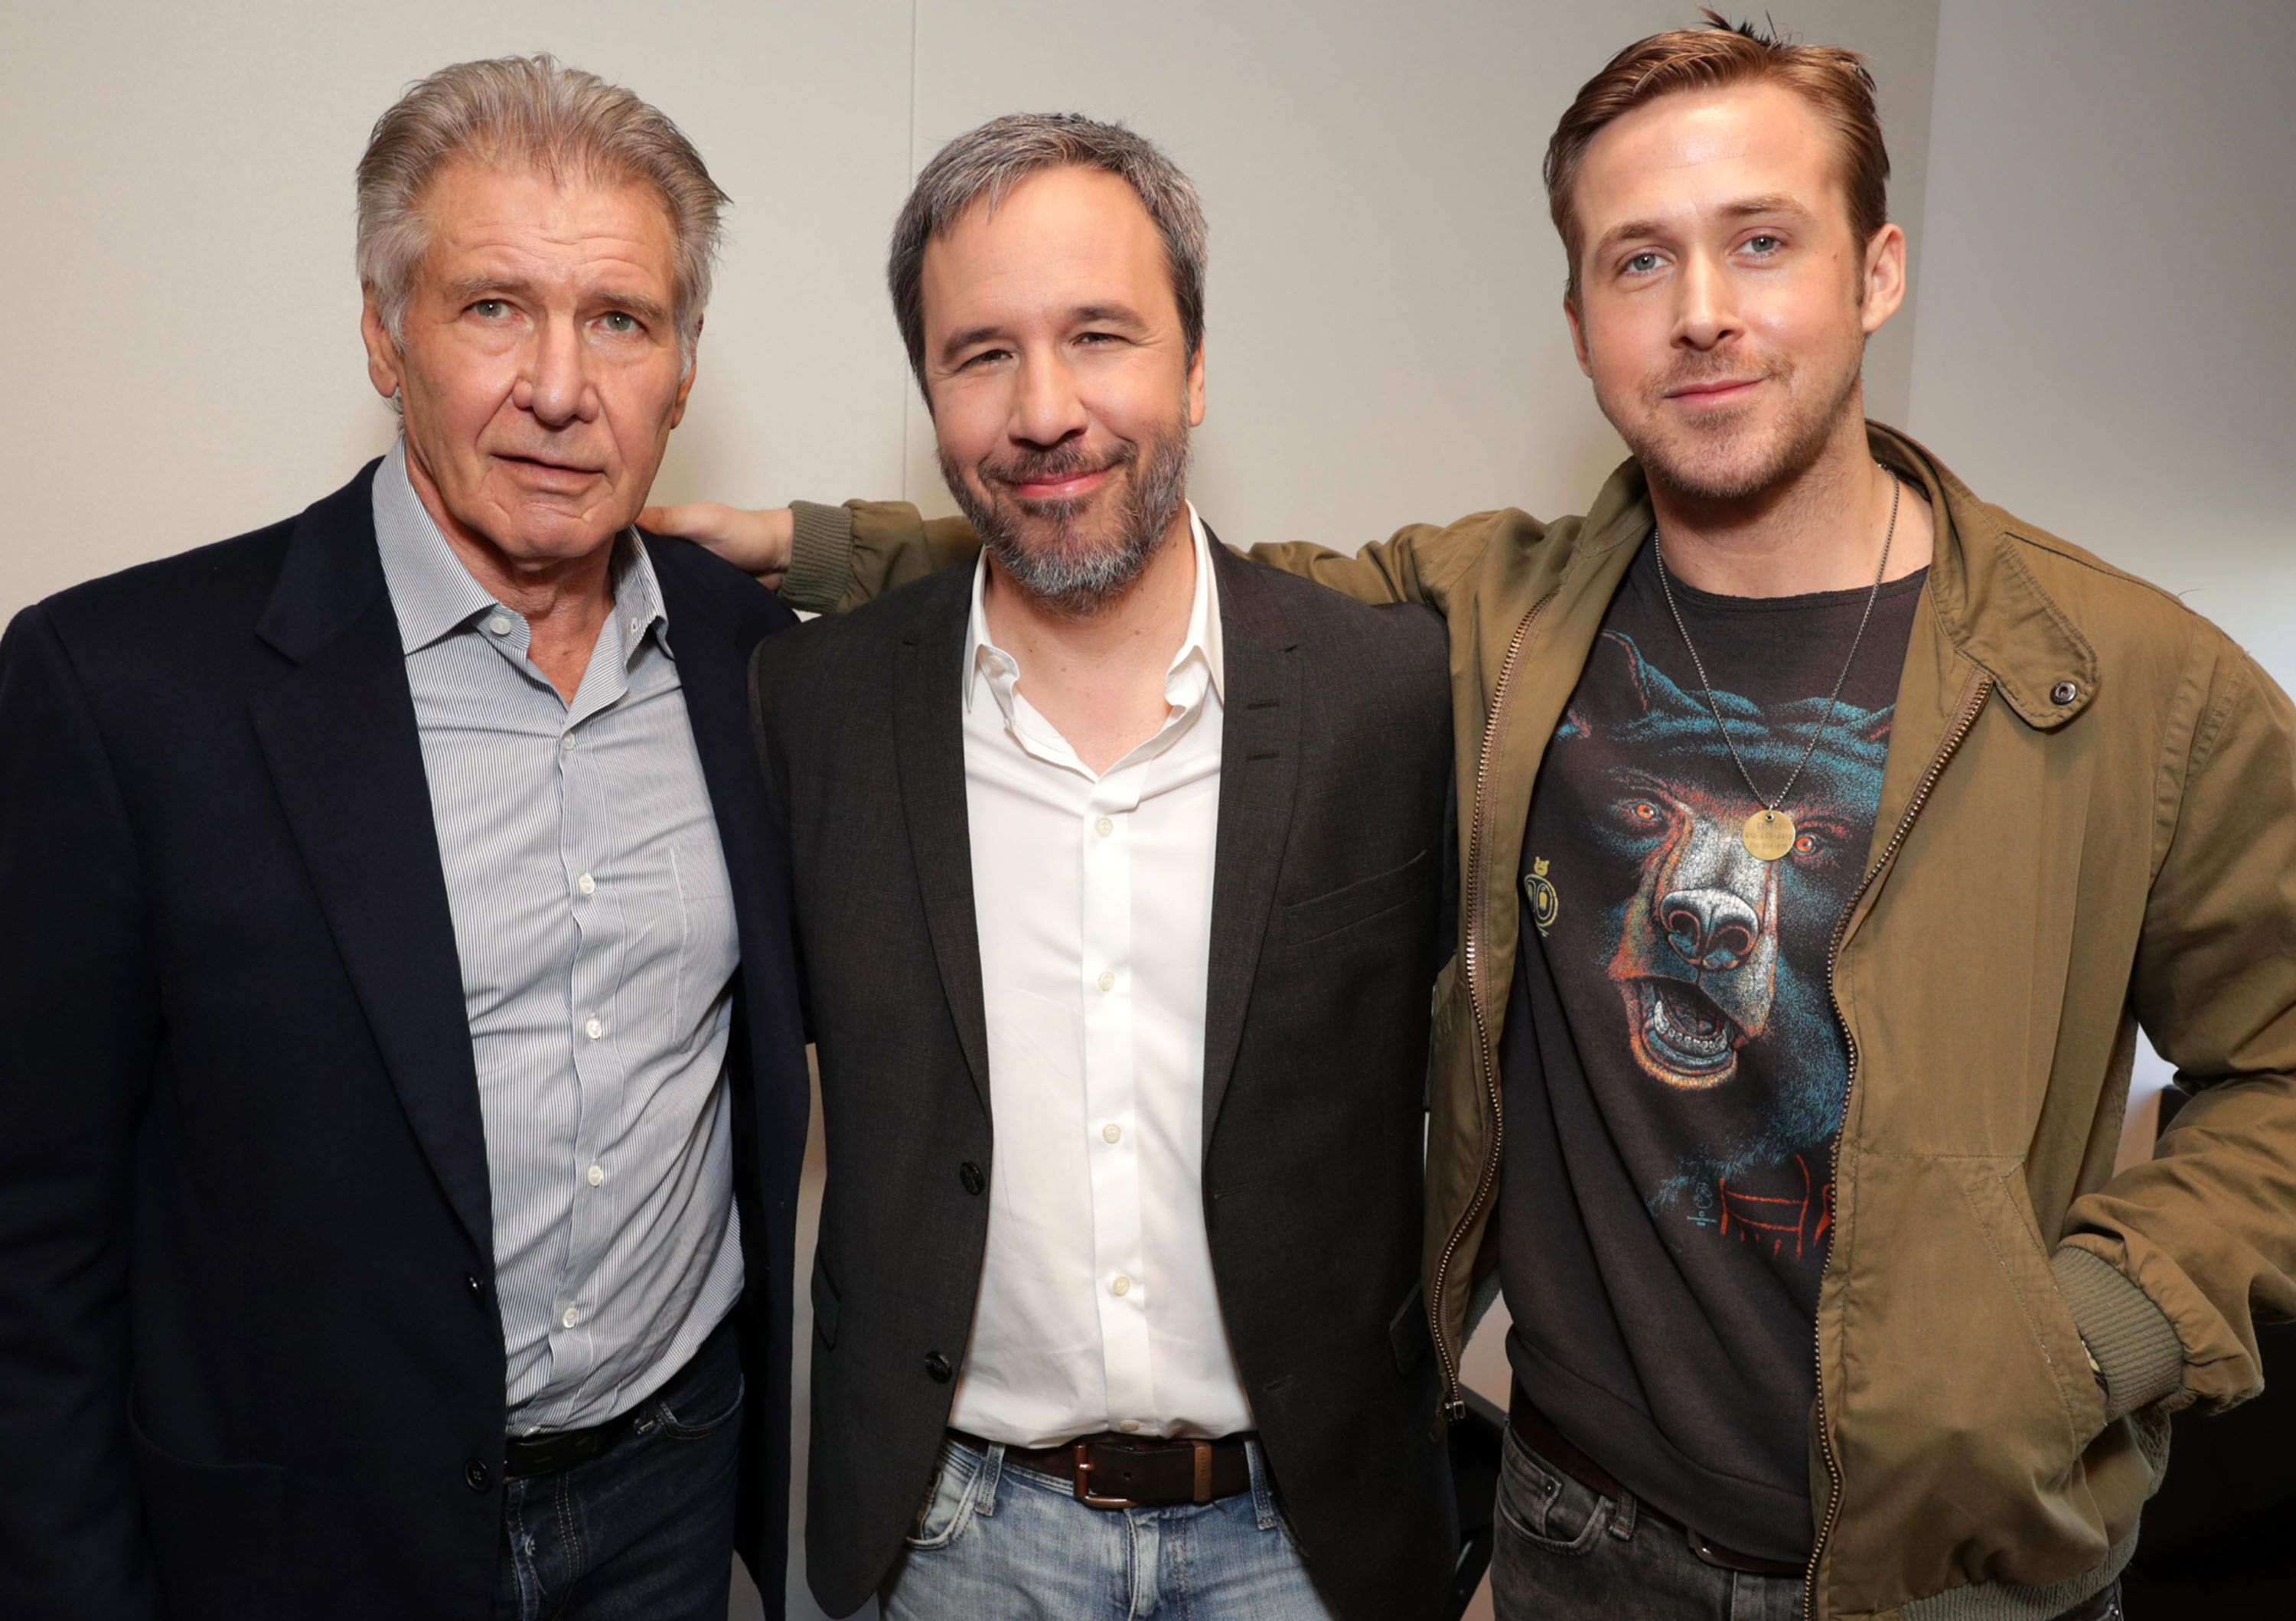 Why Blade Runner 2049 Director Was 'Frightened' to Make the Sequel